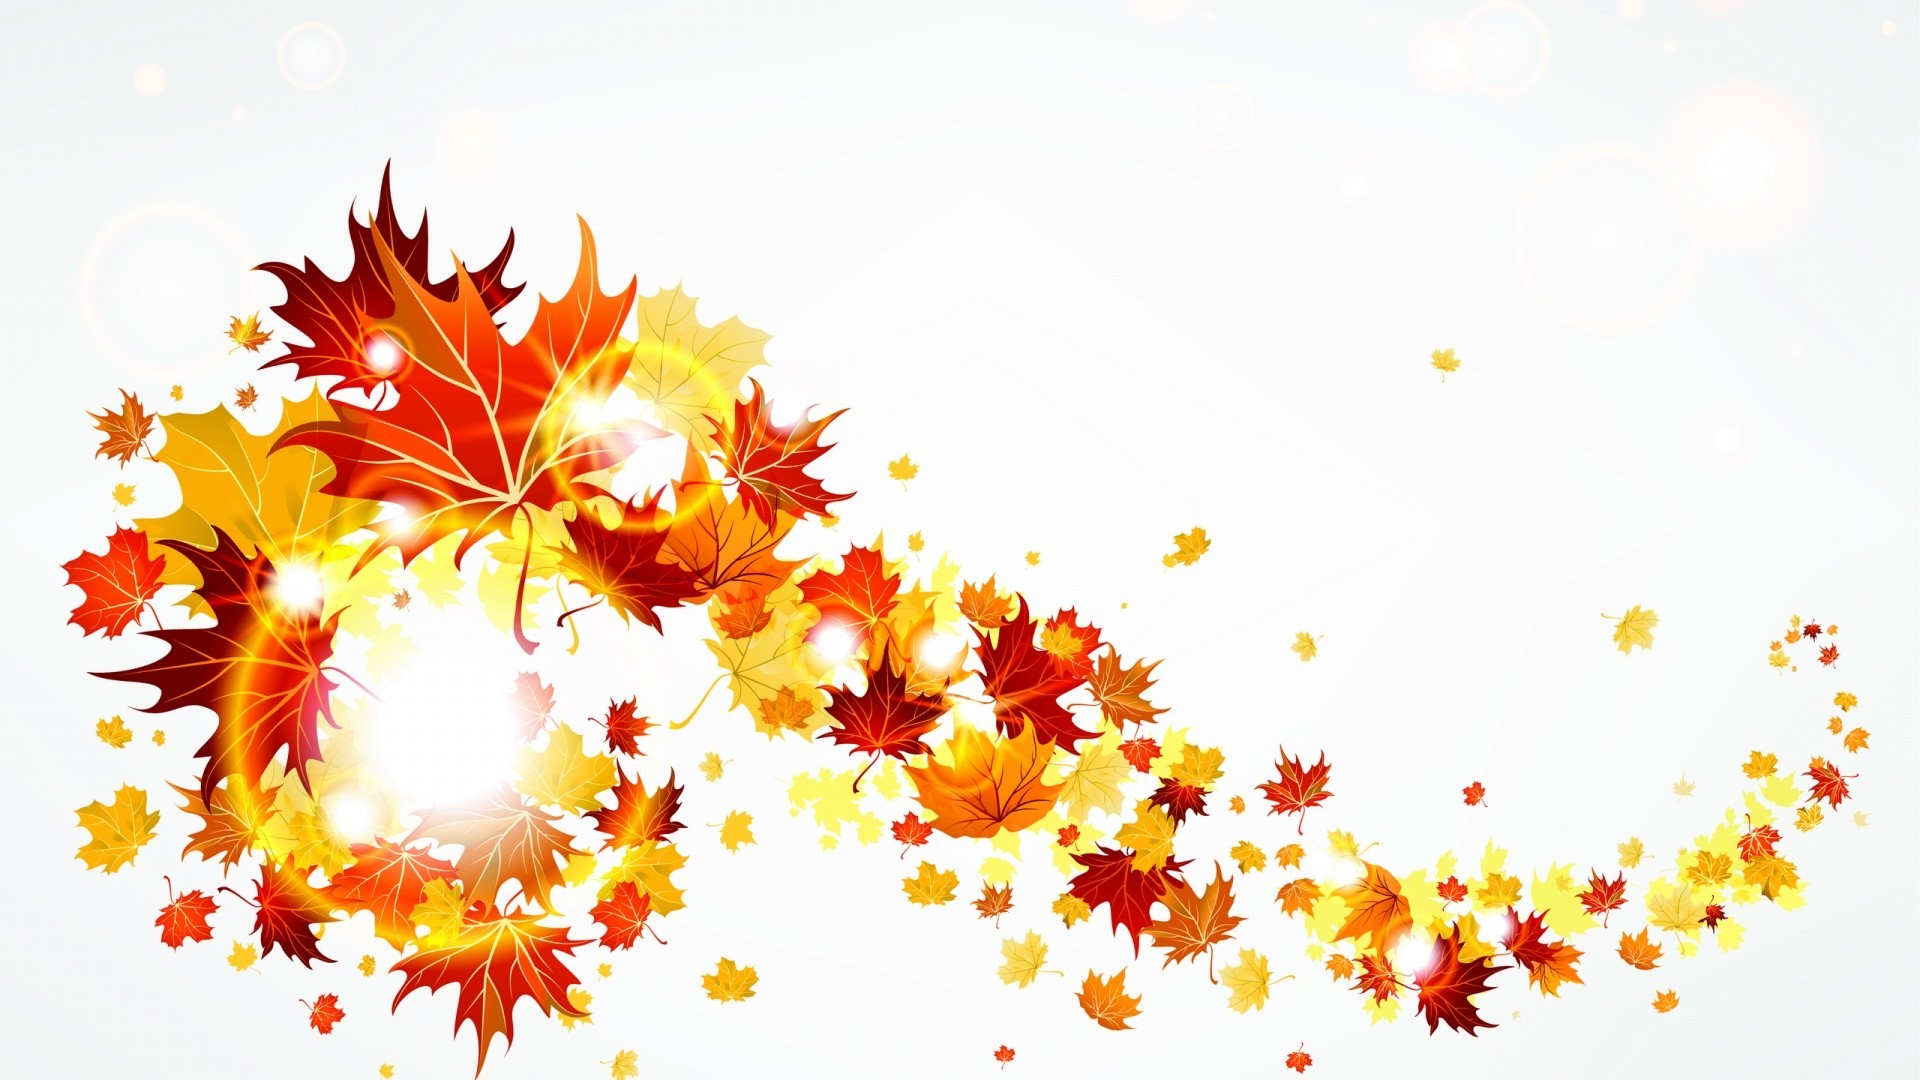 Swirling Autumn Leaves Drawing Free Image